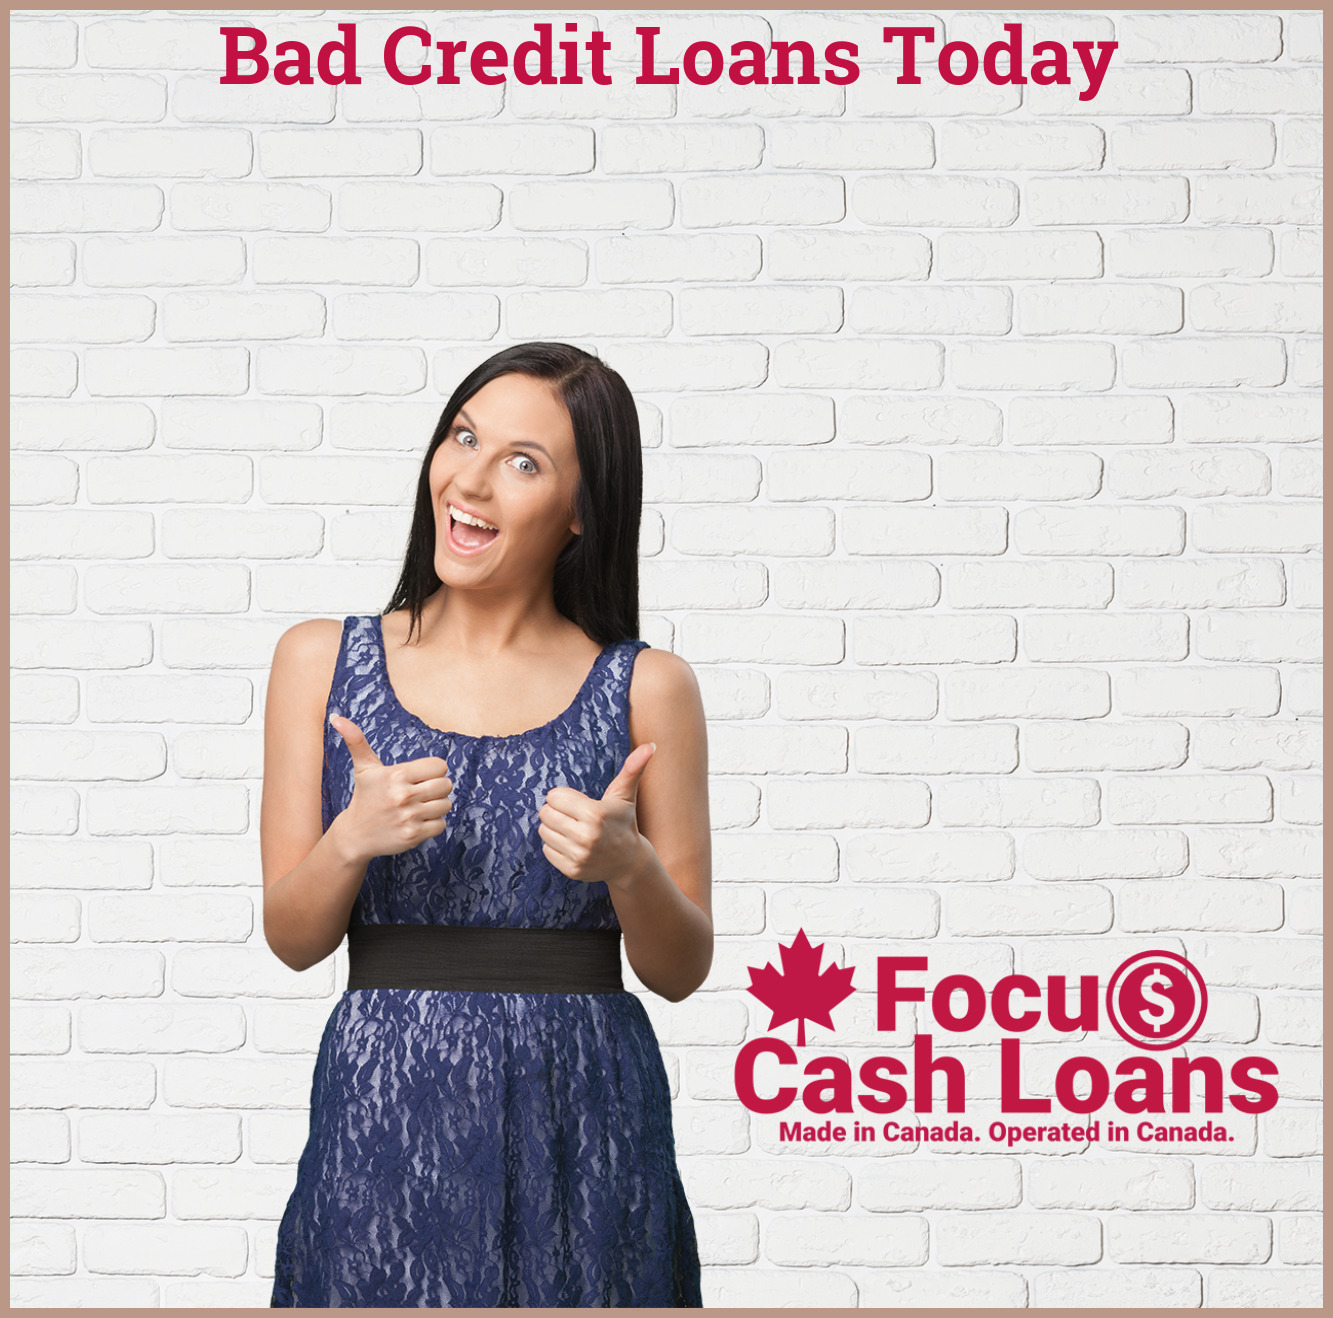 Payday Loans Surrey BC - 99% approval rate - cash in 30 minutes!